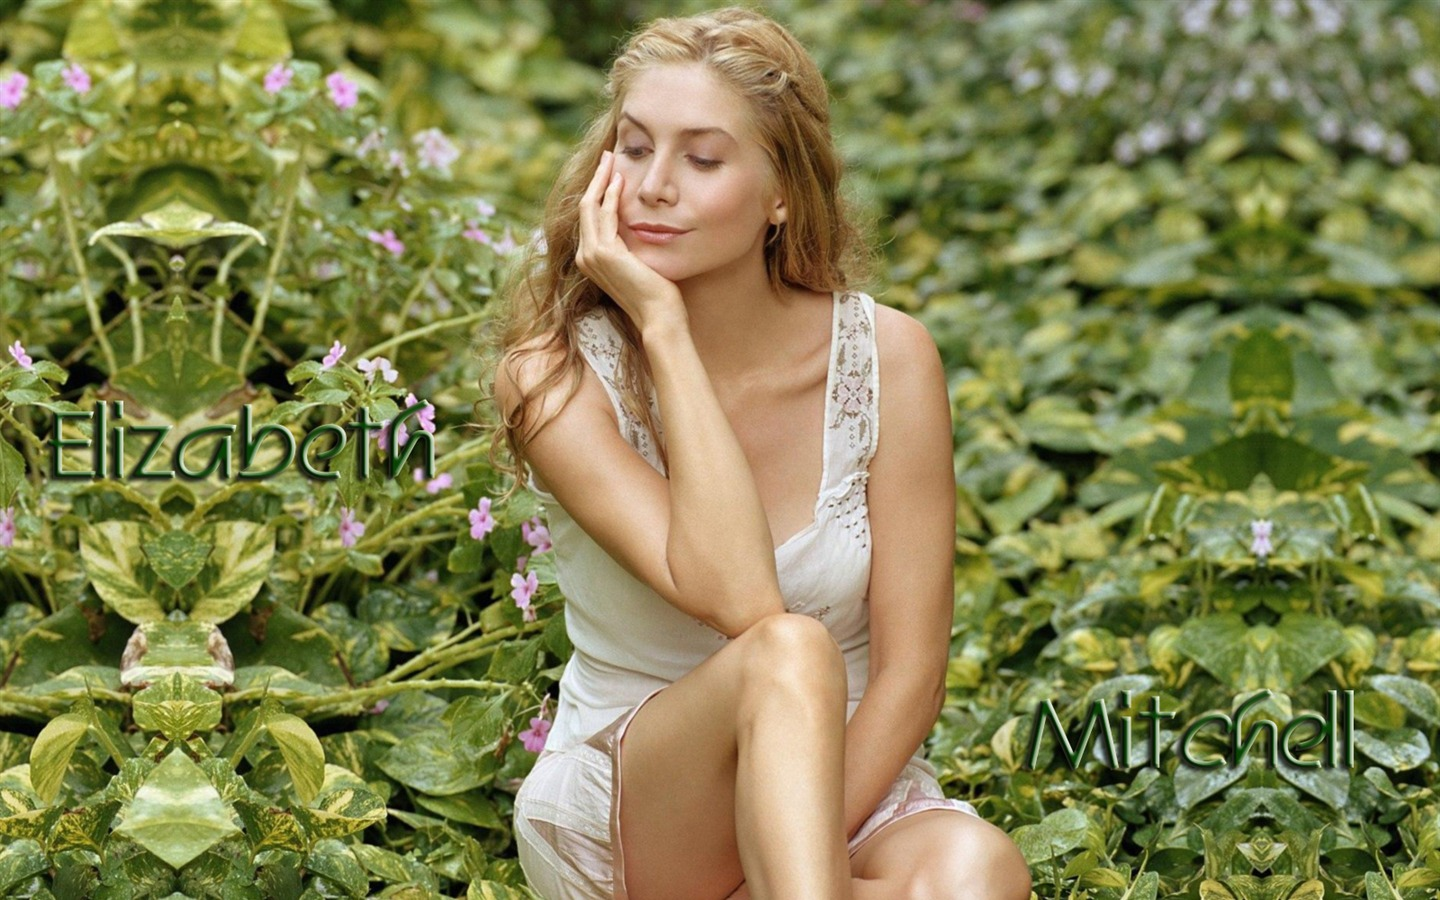 Elizabeth Mitchell #013 - 1440x900 Wallpapers Pictures Photos Images